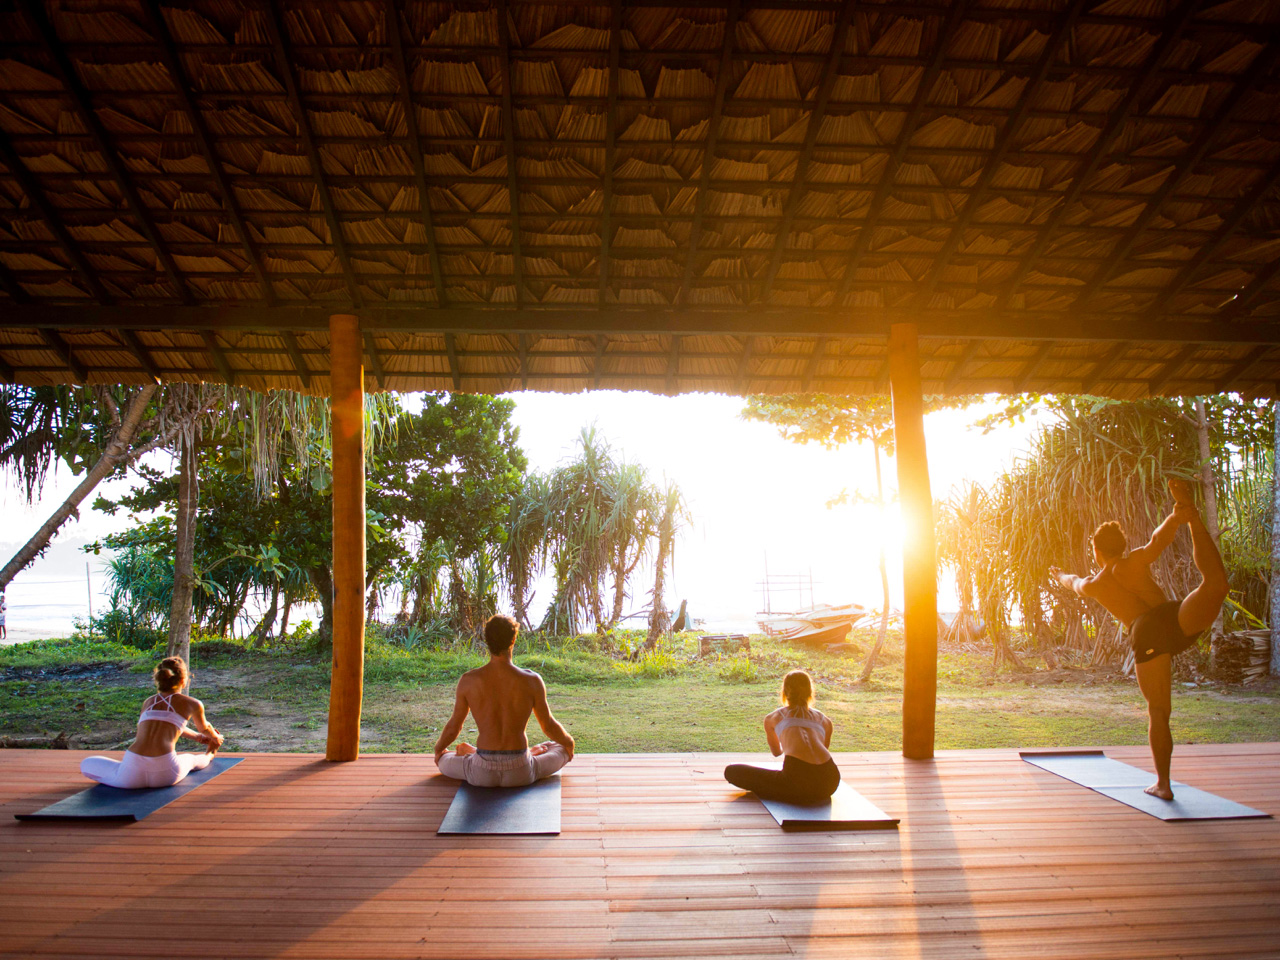 Yoga Explorers yoga retreat in Sri Lanka - sunrise yoga